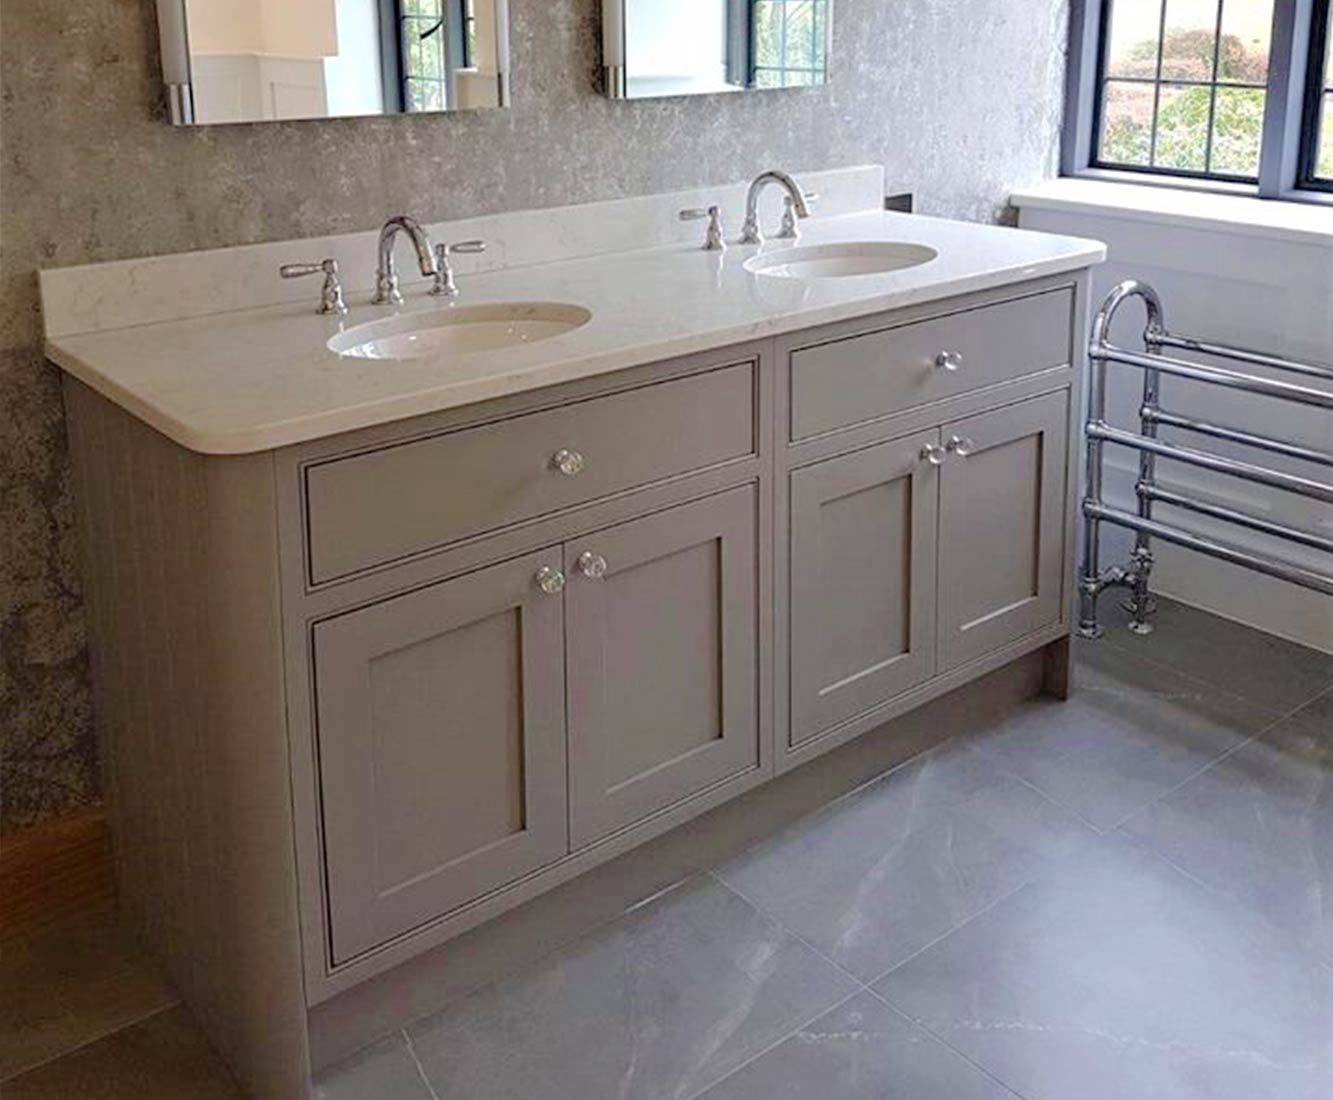 Cooper Bespoke Joinery Bespoke vanity double sink worsted painted jim lawrence